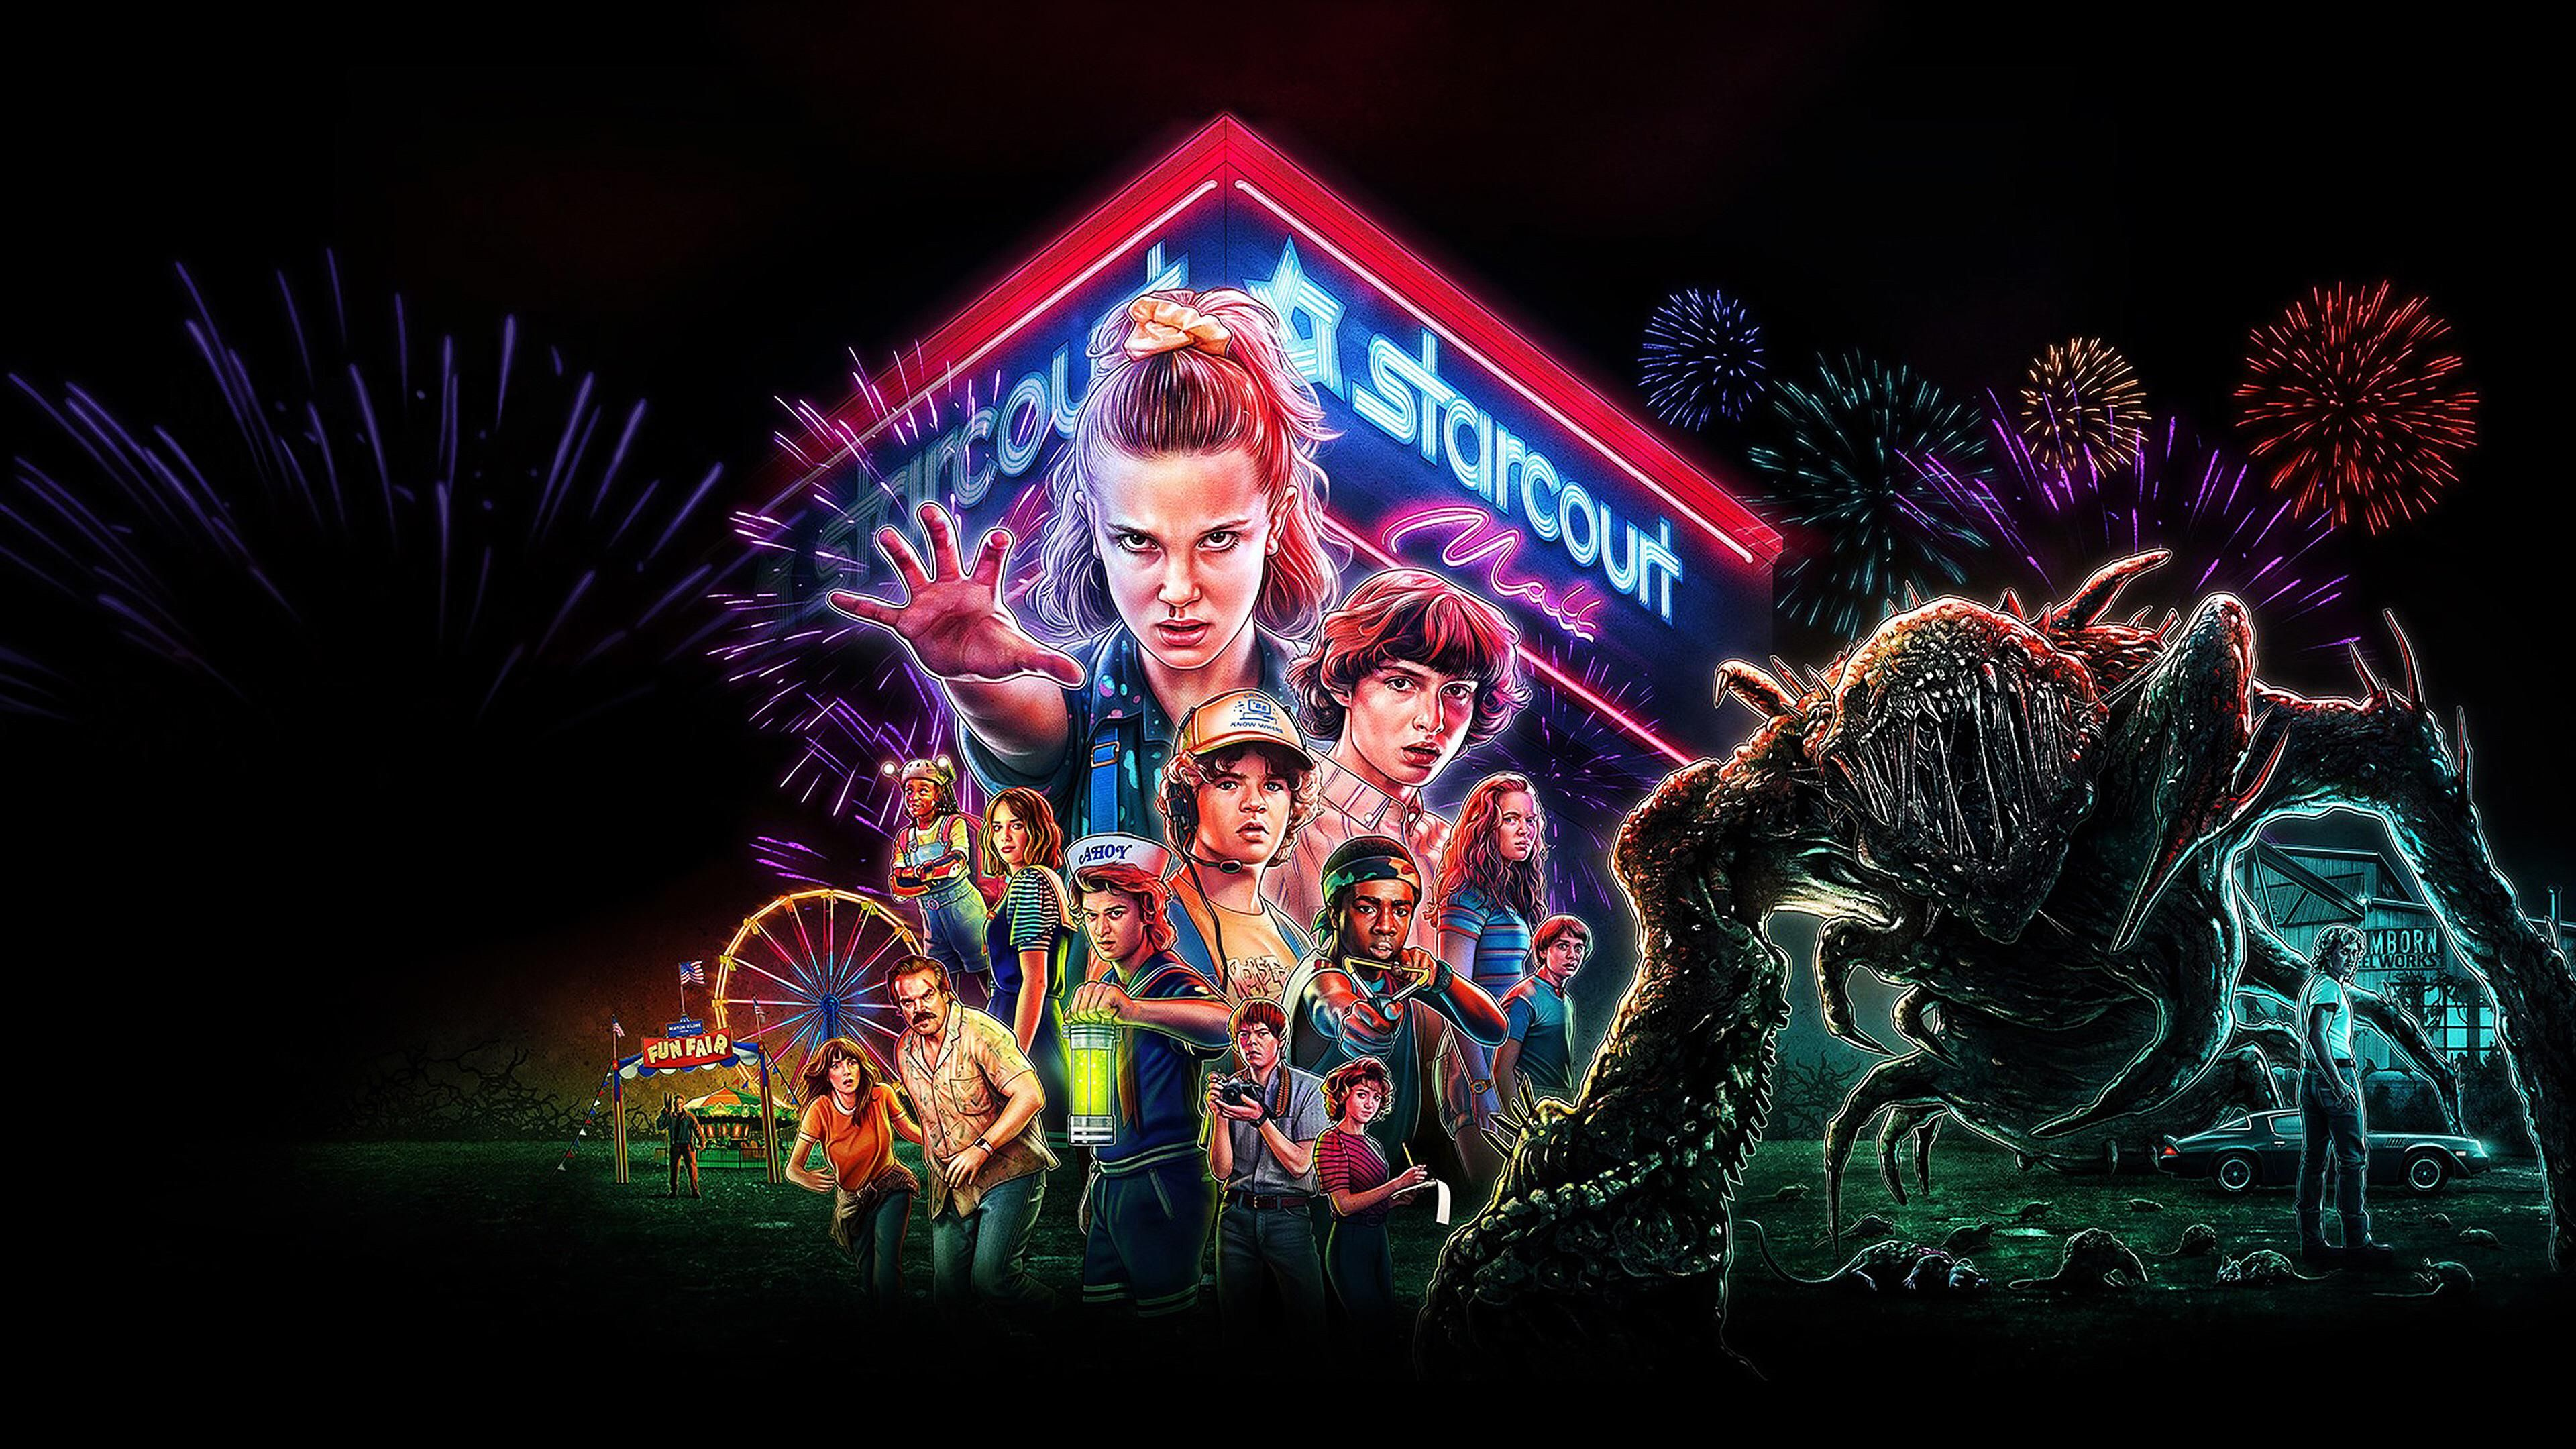 80 Ps4 Background Wallpapers Stranger Things Poster Stranger Things Season Stranger Things Wallpaper